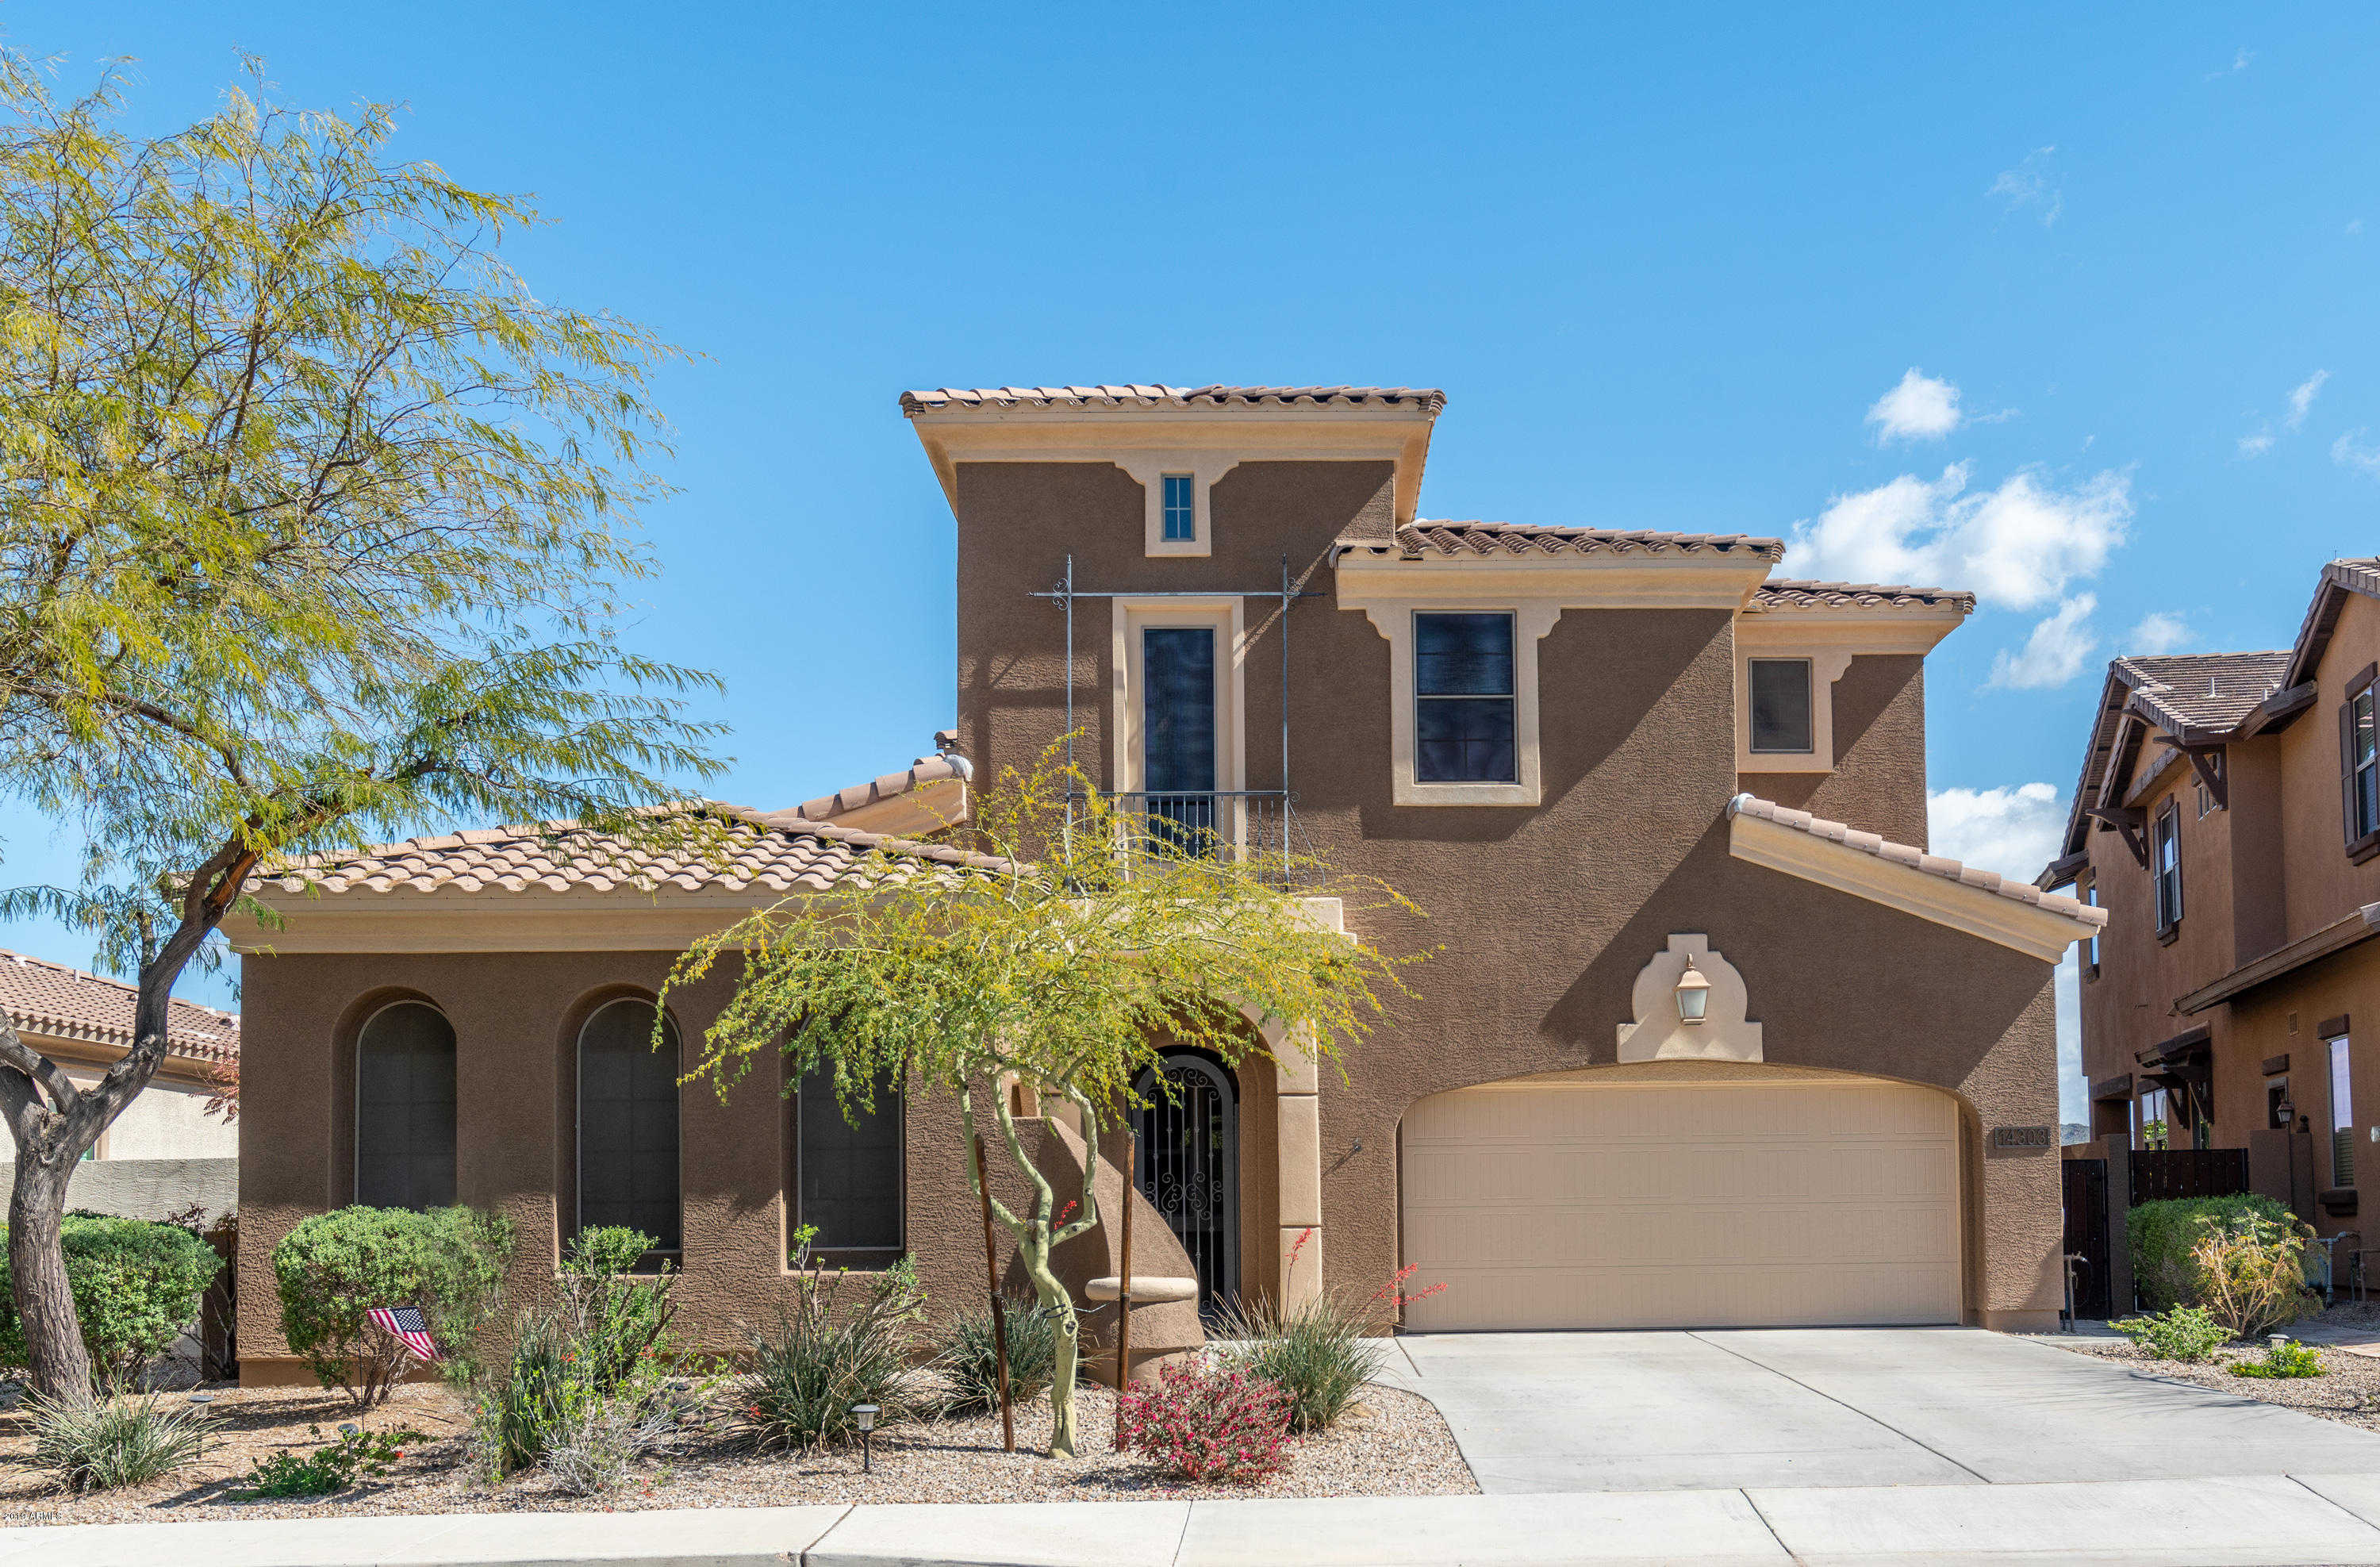 $440,000 - 5Br/4Ba - Home for Sale in Estrella Mountain Ranch, Goodyear